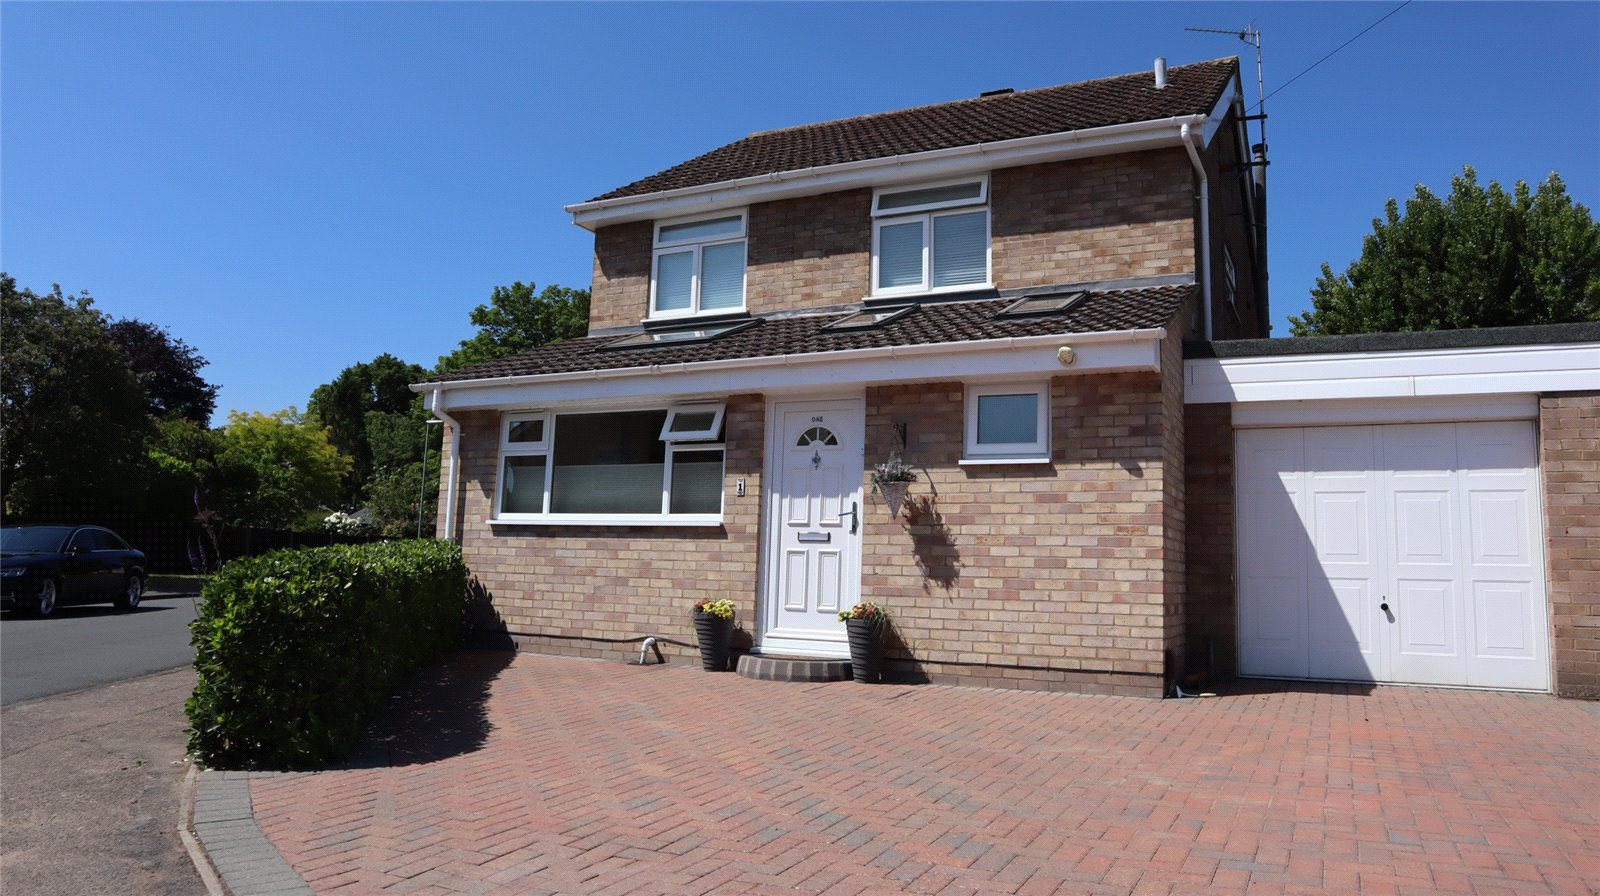 3 bed house for sale in Hathaway Close, Eaton Socon 0